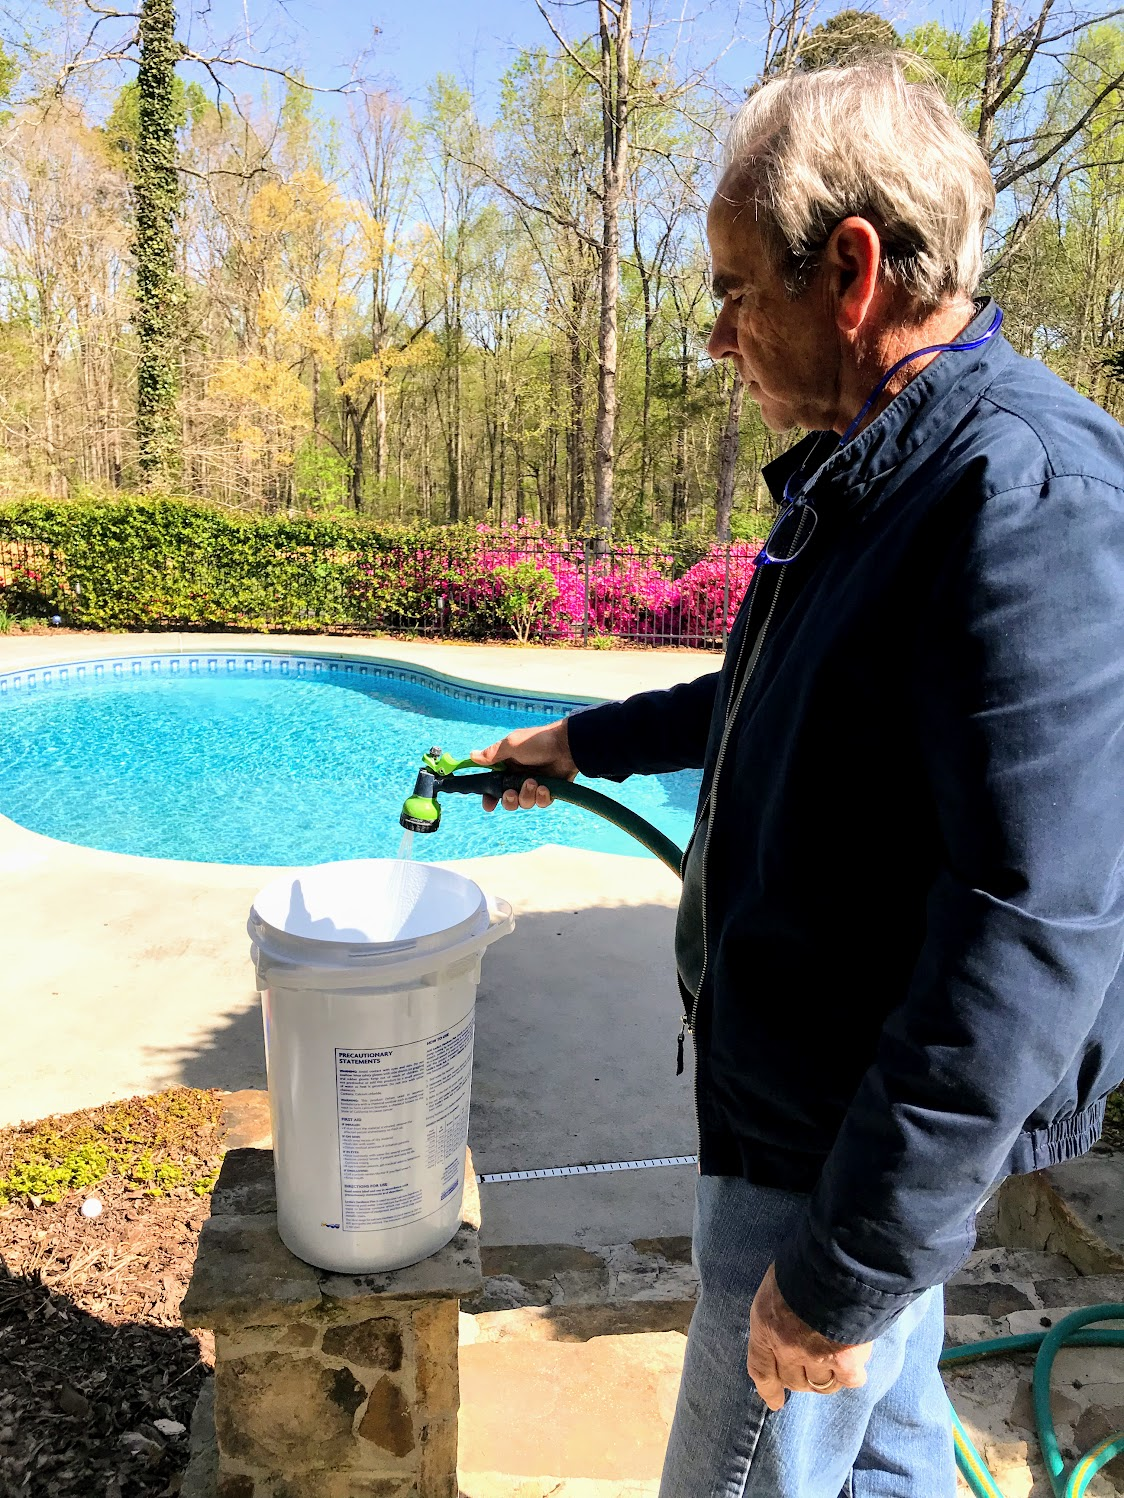 mixing chemicals for swimming pool